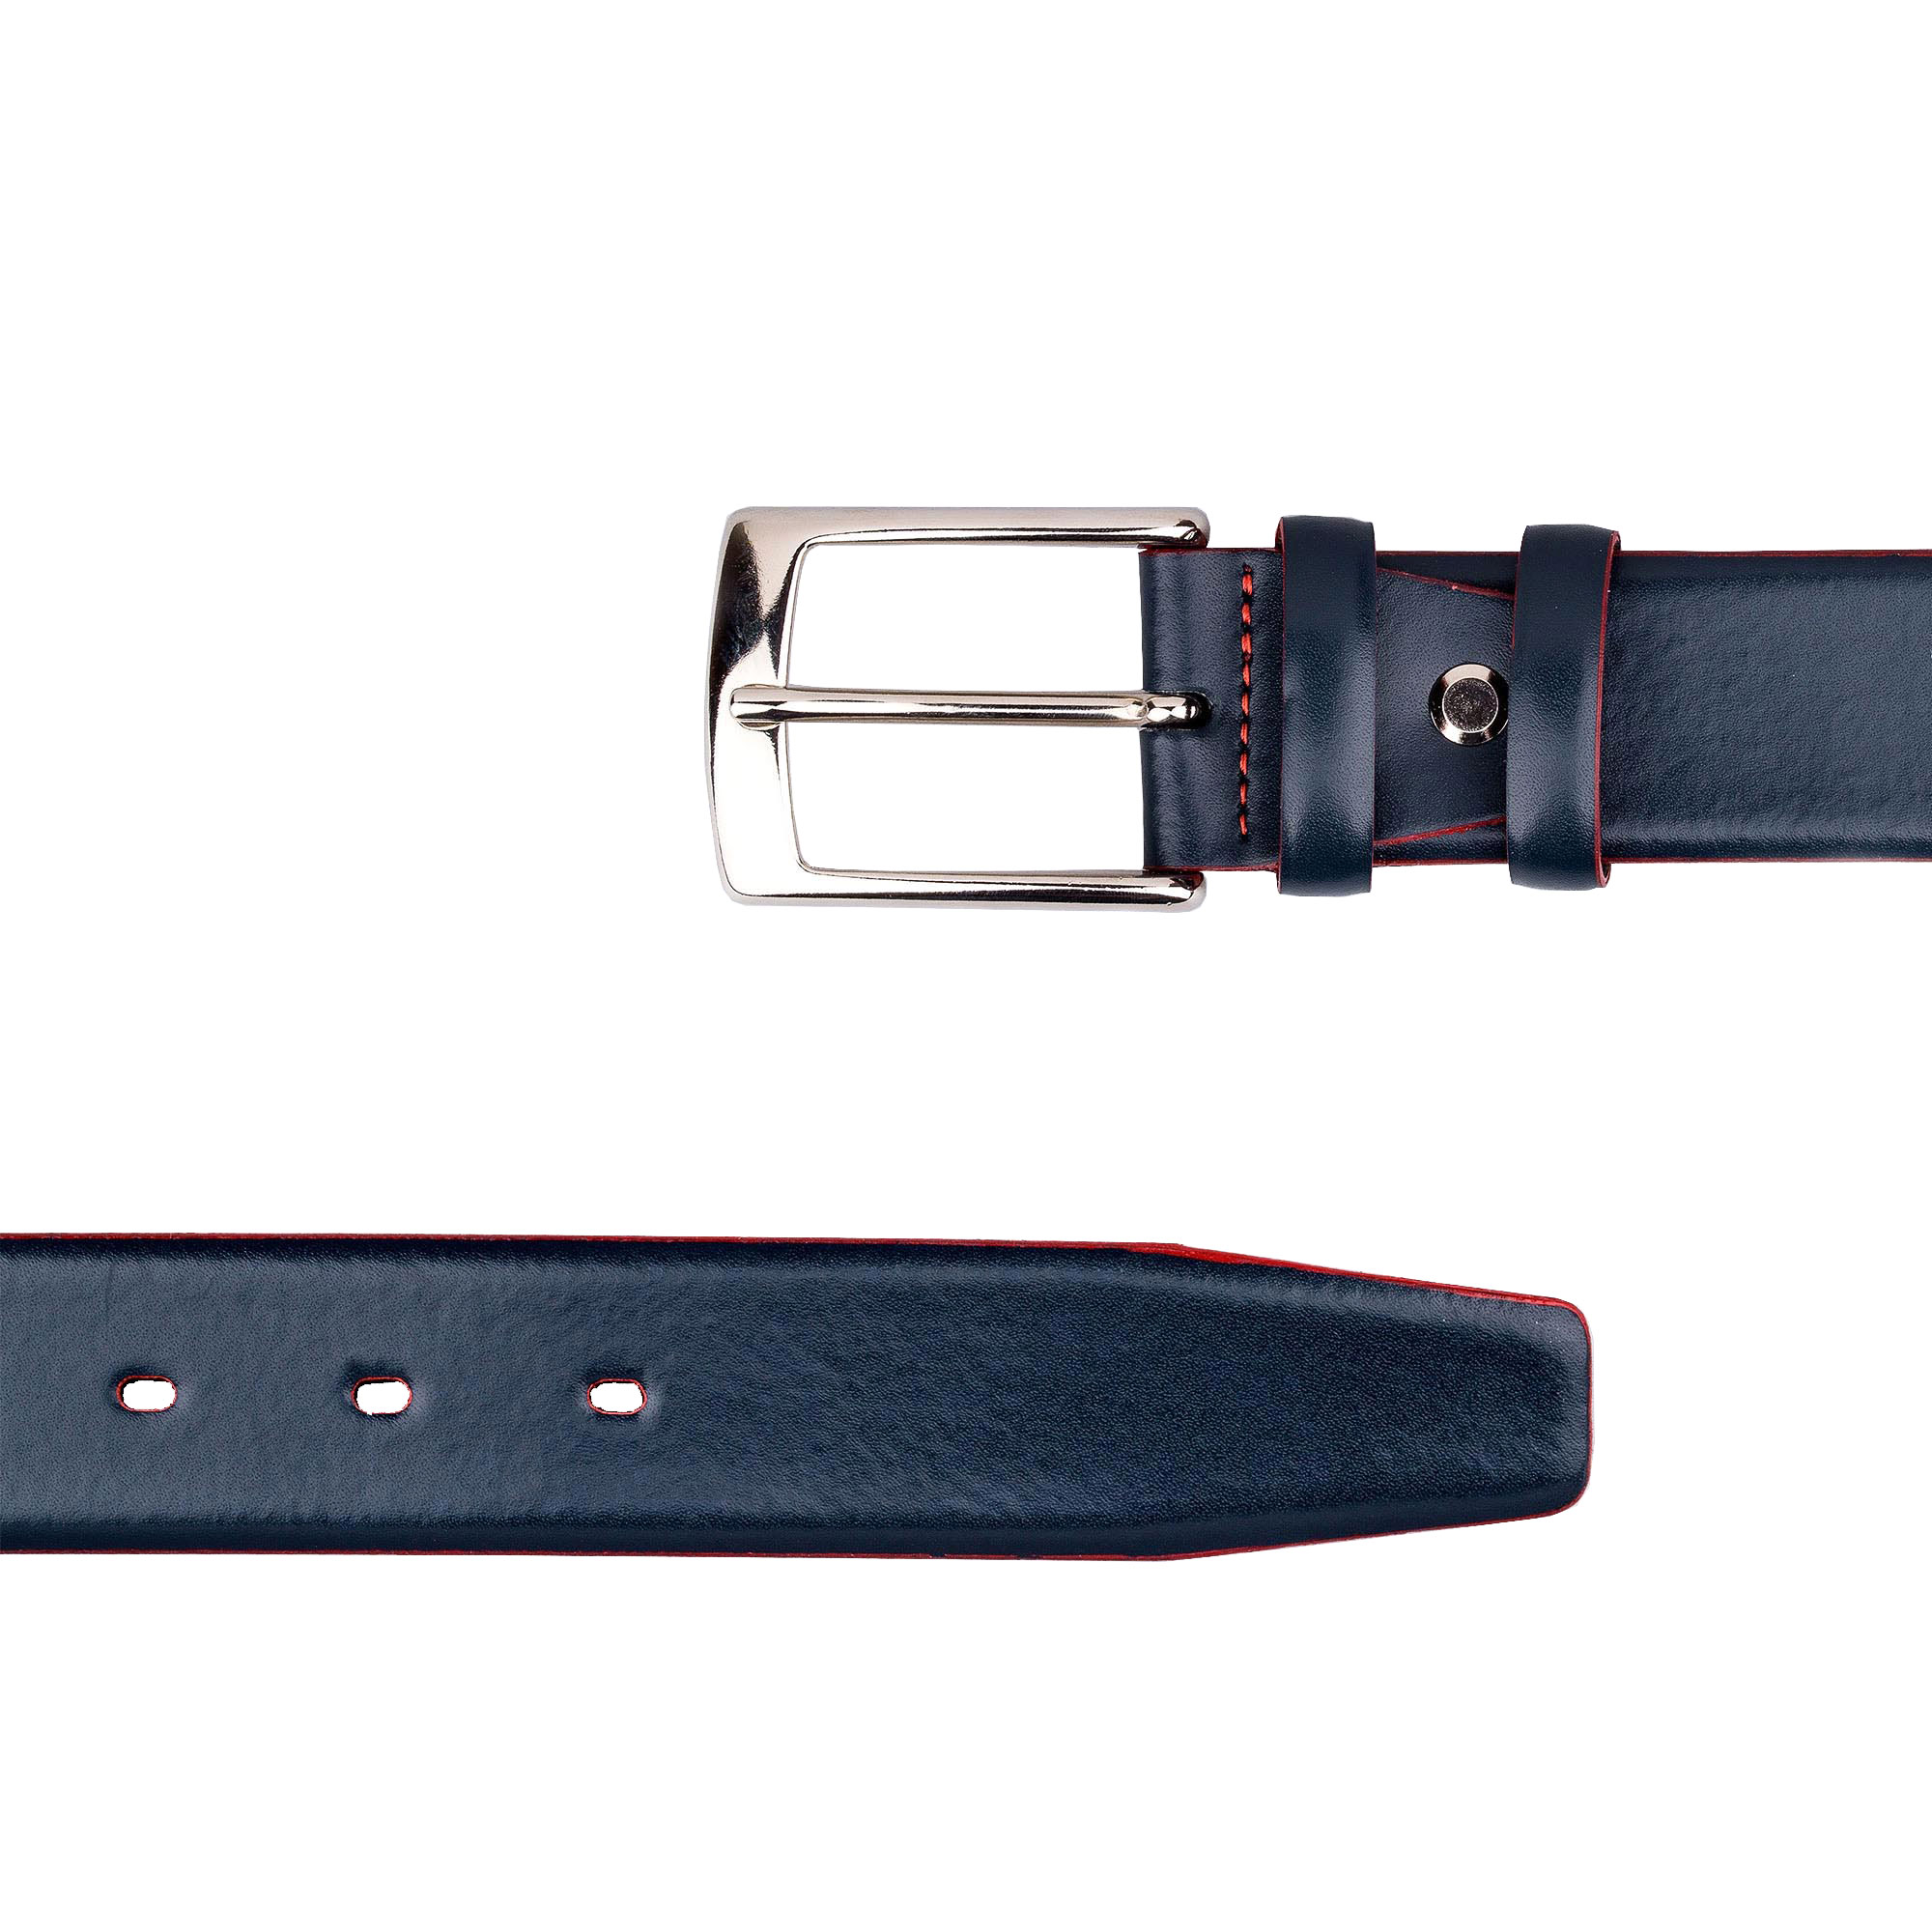 bce593e370a51 Capo Pelle belts for women. Blue Leather Belt With Red Edges LXNV34NP